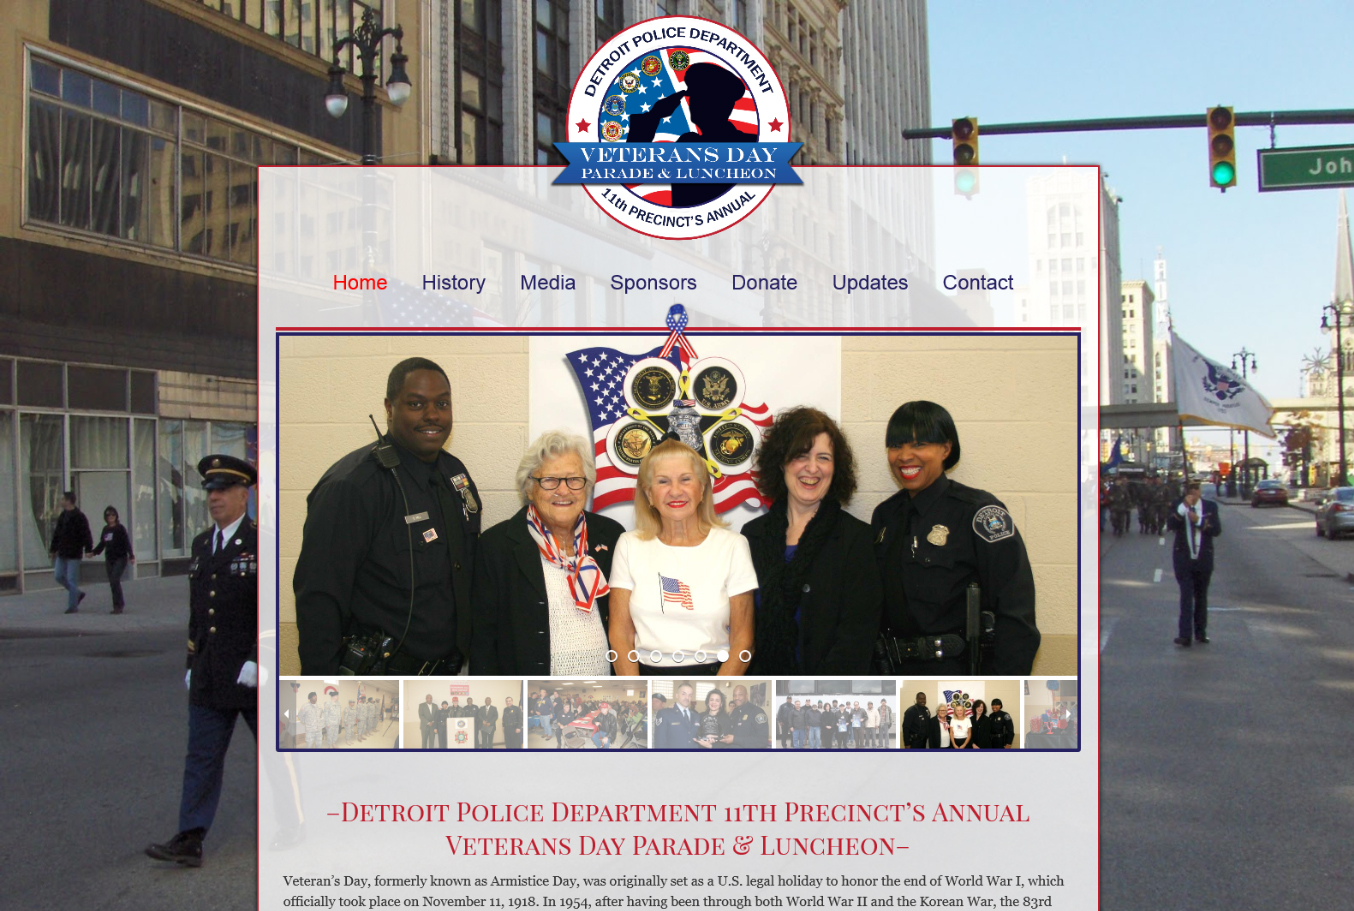 DPD 11th Precinct Veterans Day Parade & Luncheon